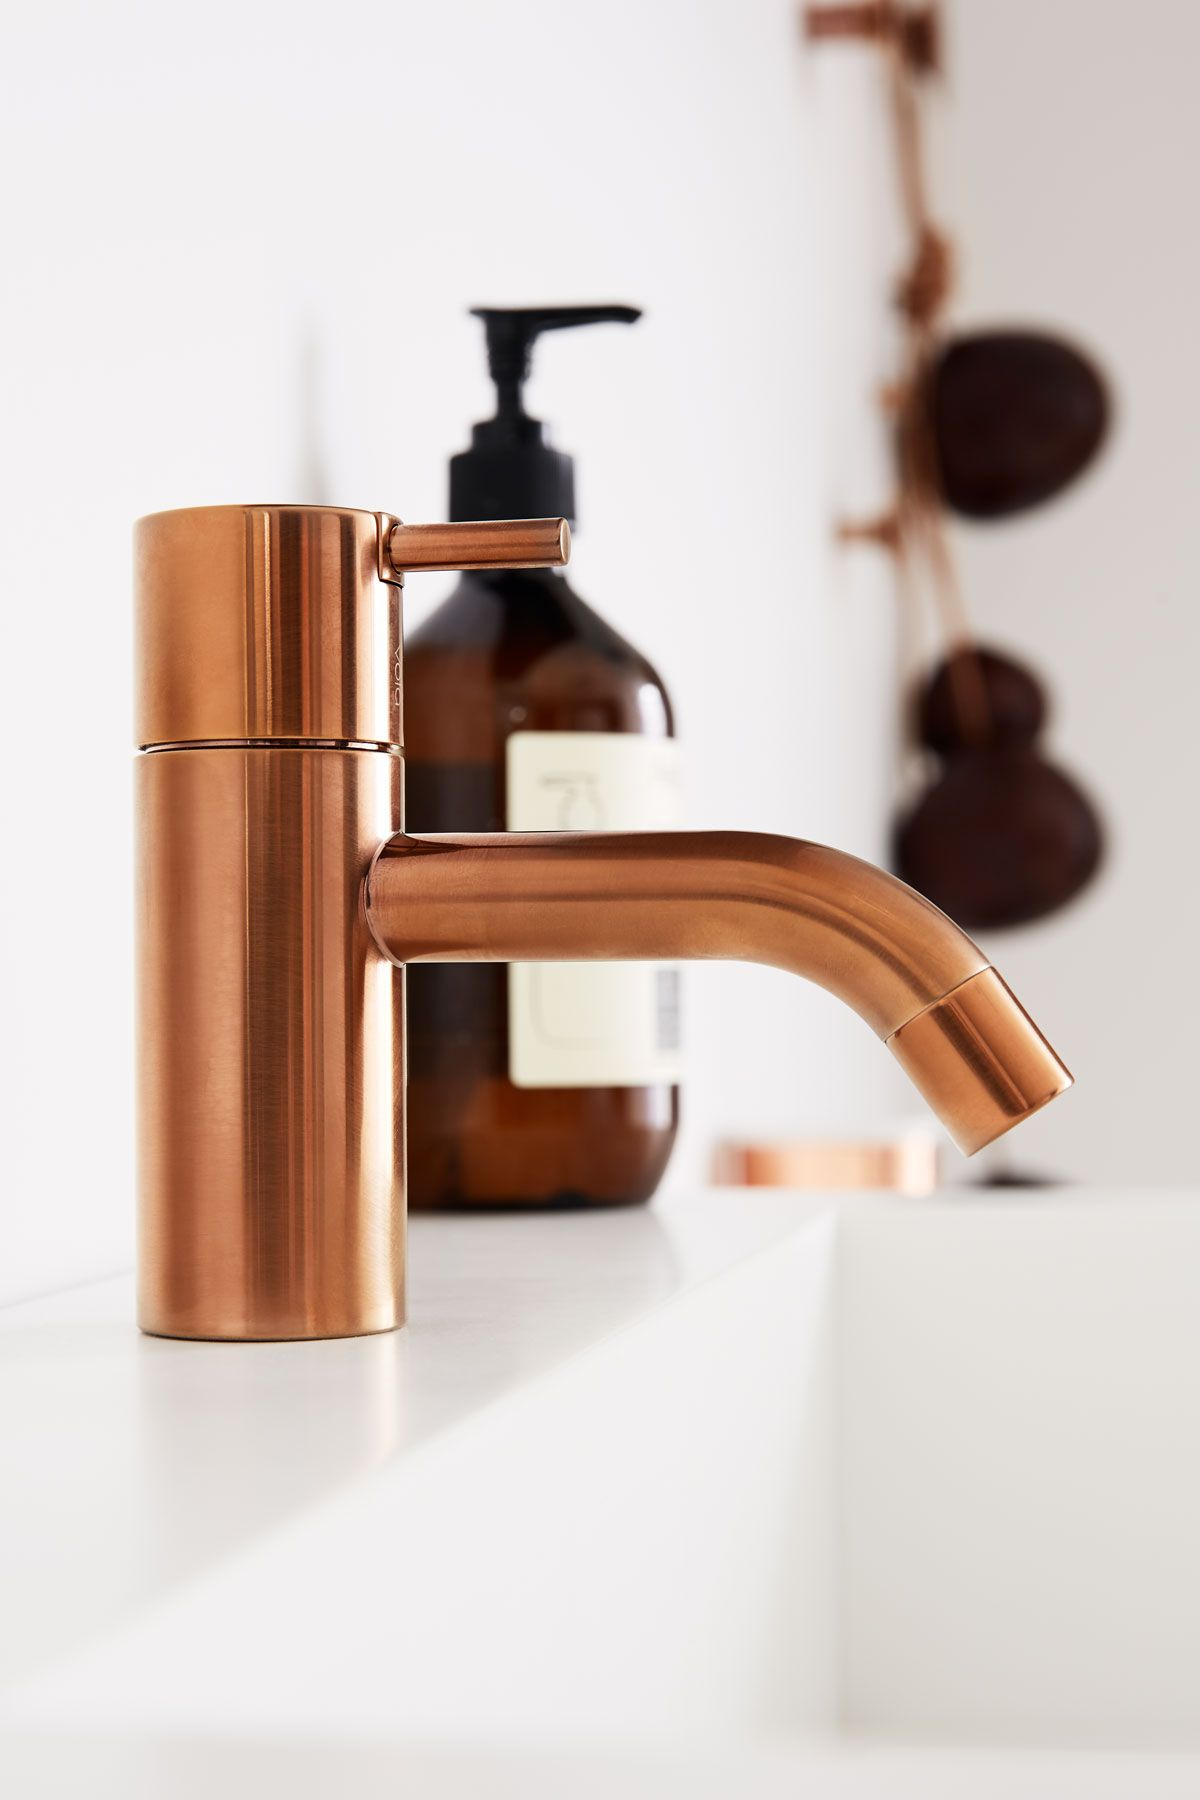 Copper Basin Mixer Tap Vola Hv1 Designed By Arne